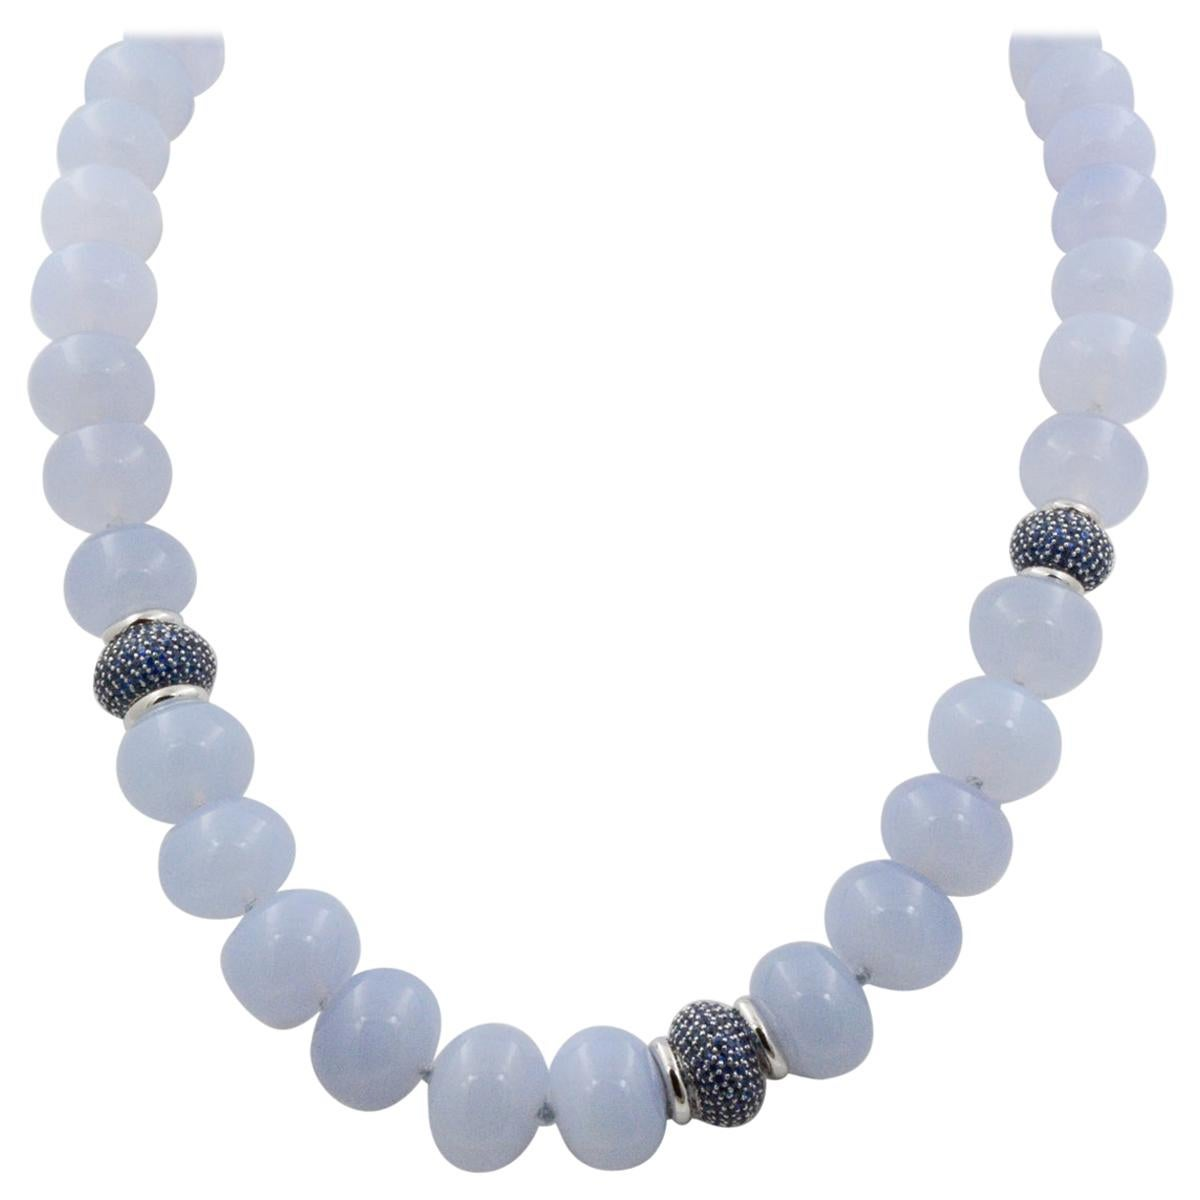 Seaman Schepps Juno Blue Chalcedony Beads and Sapphire Necklace